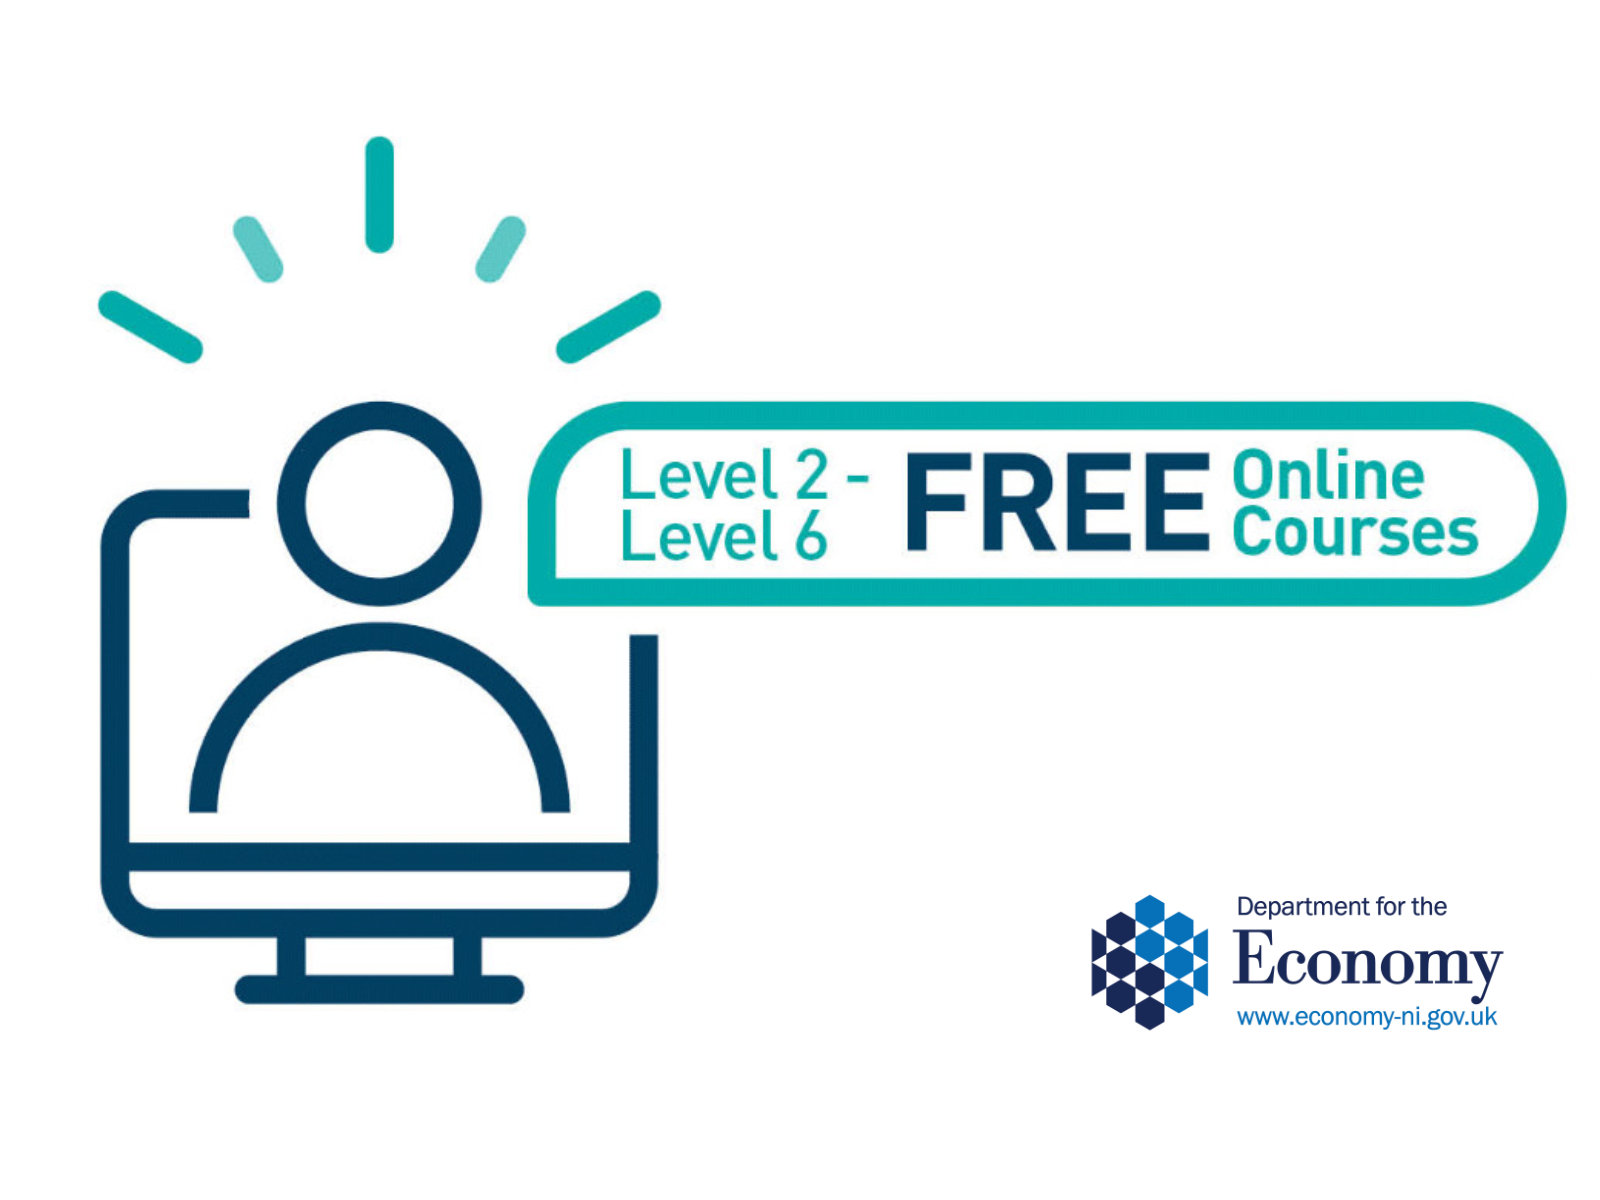 Free online courses!